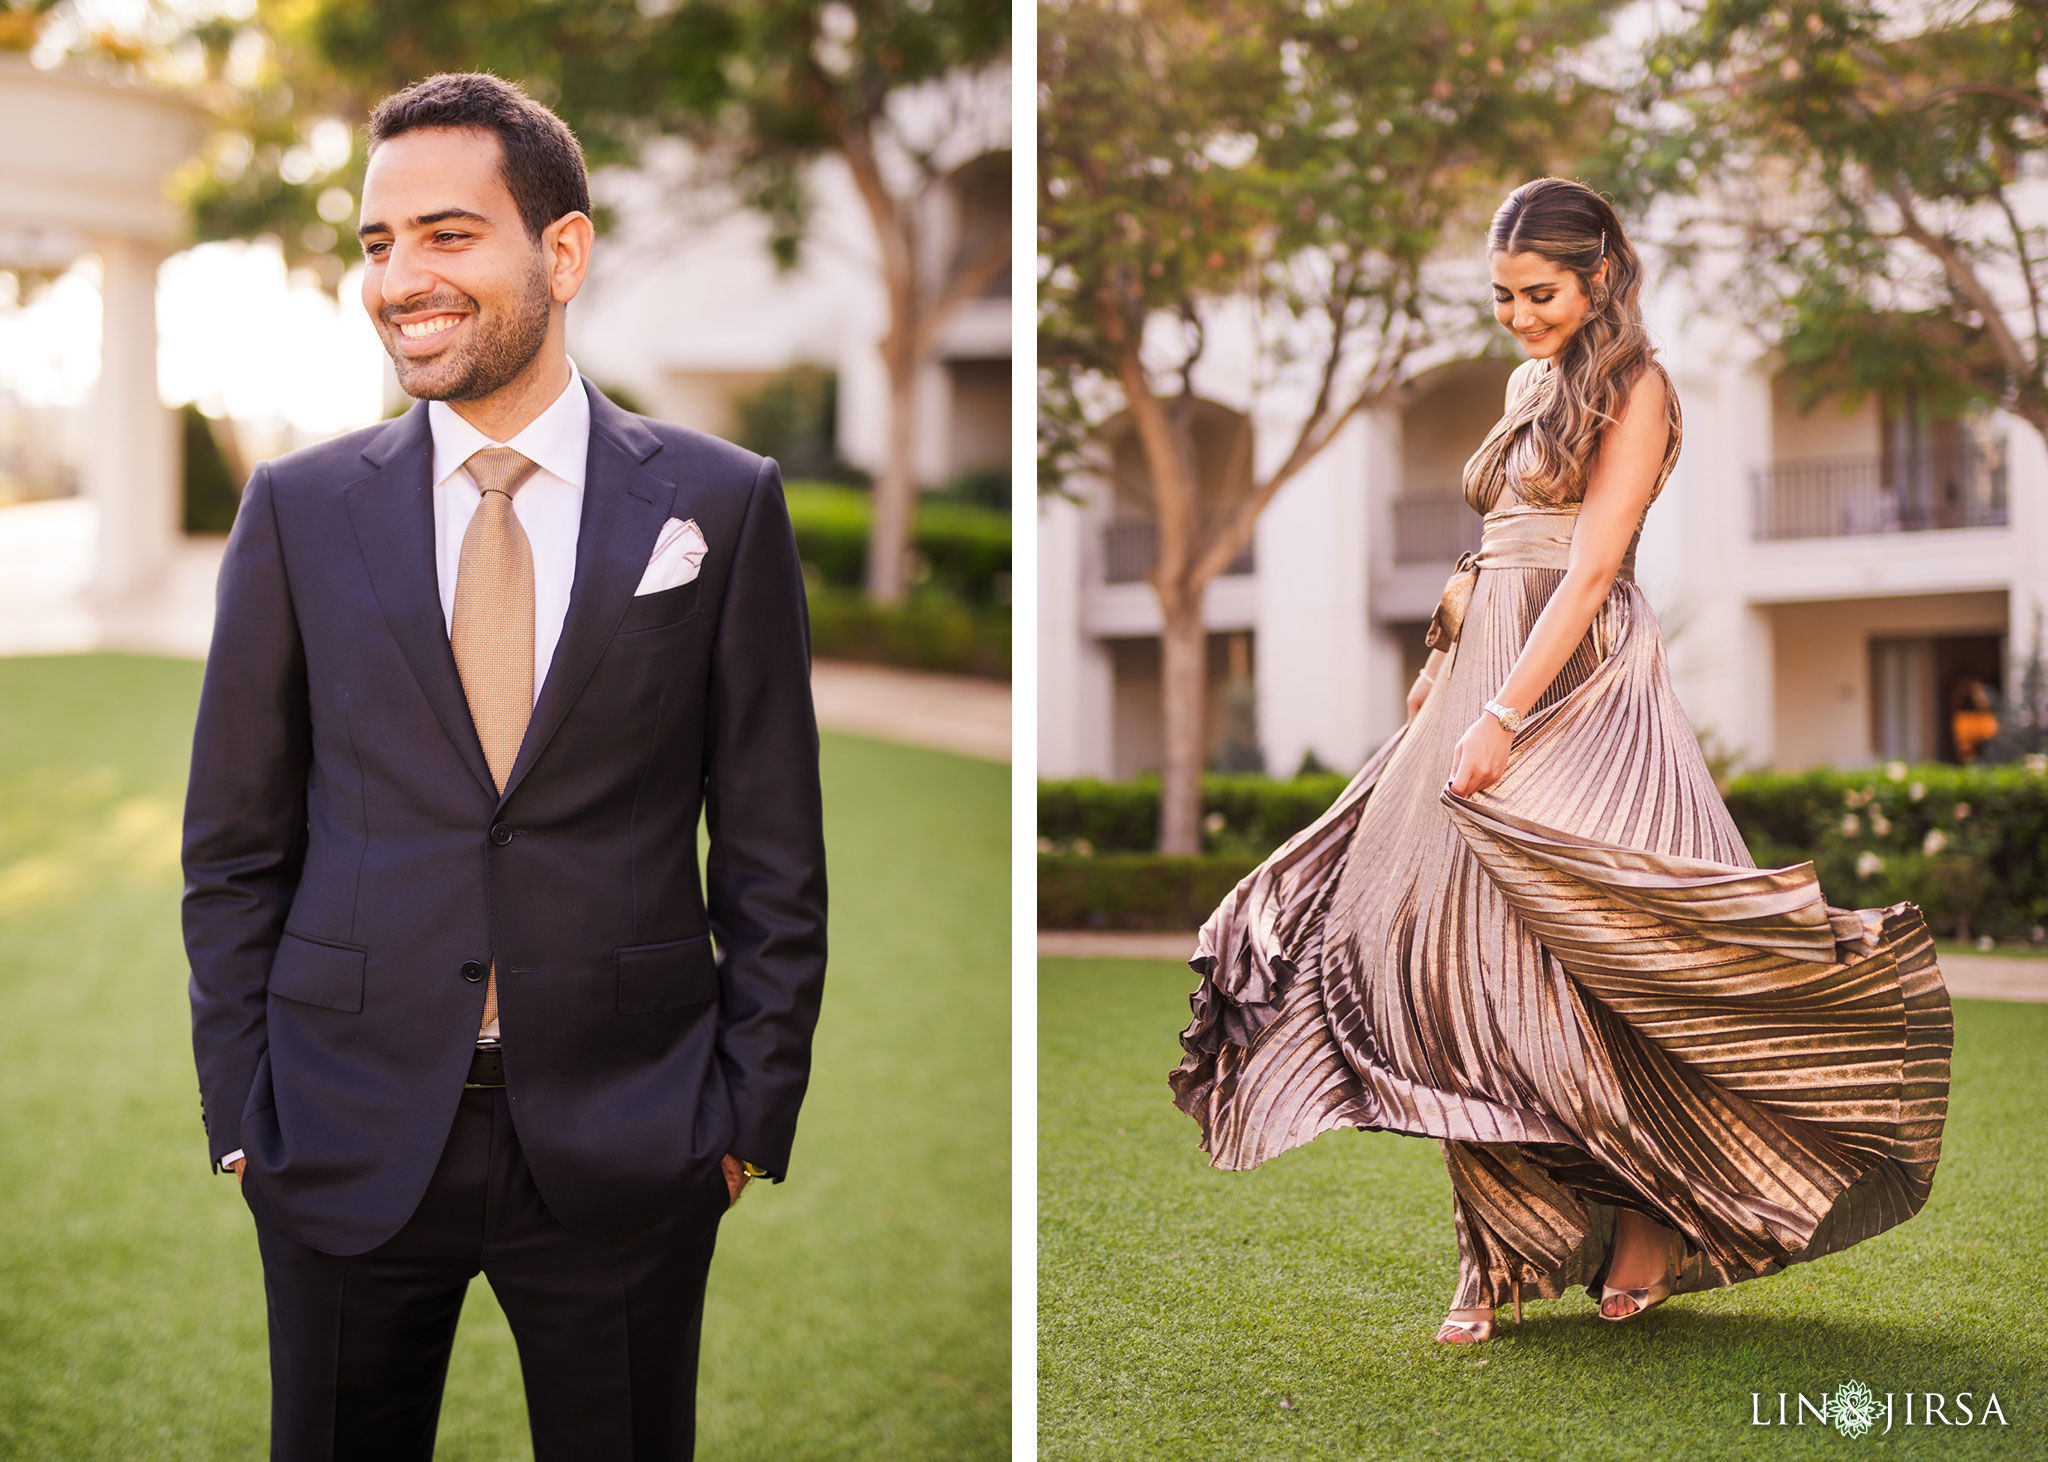 001 monarch beach resort dana point engagement party photography